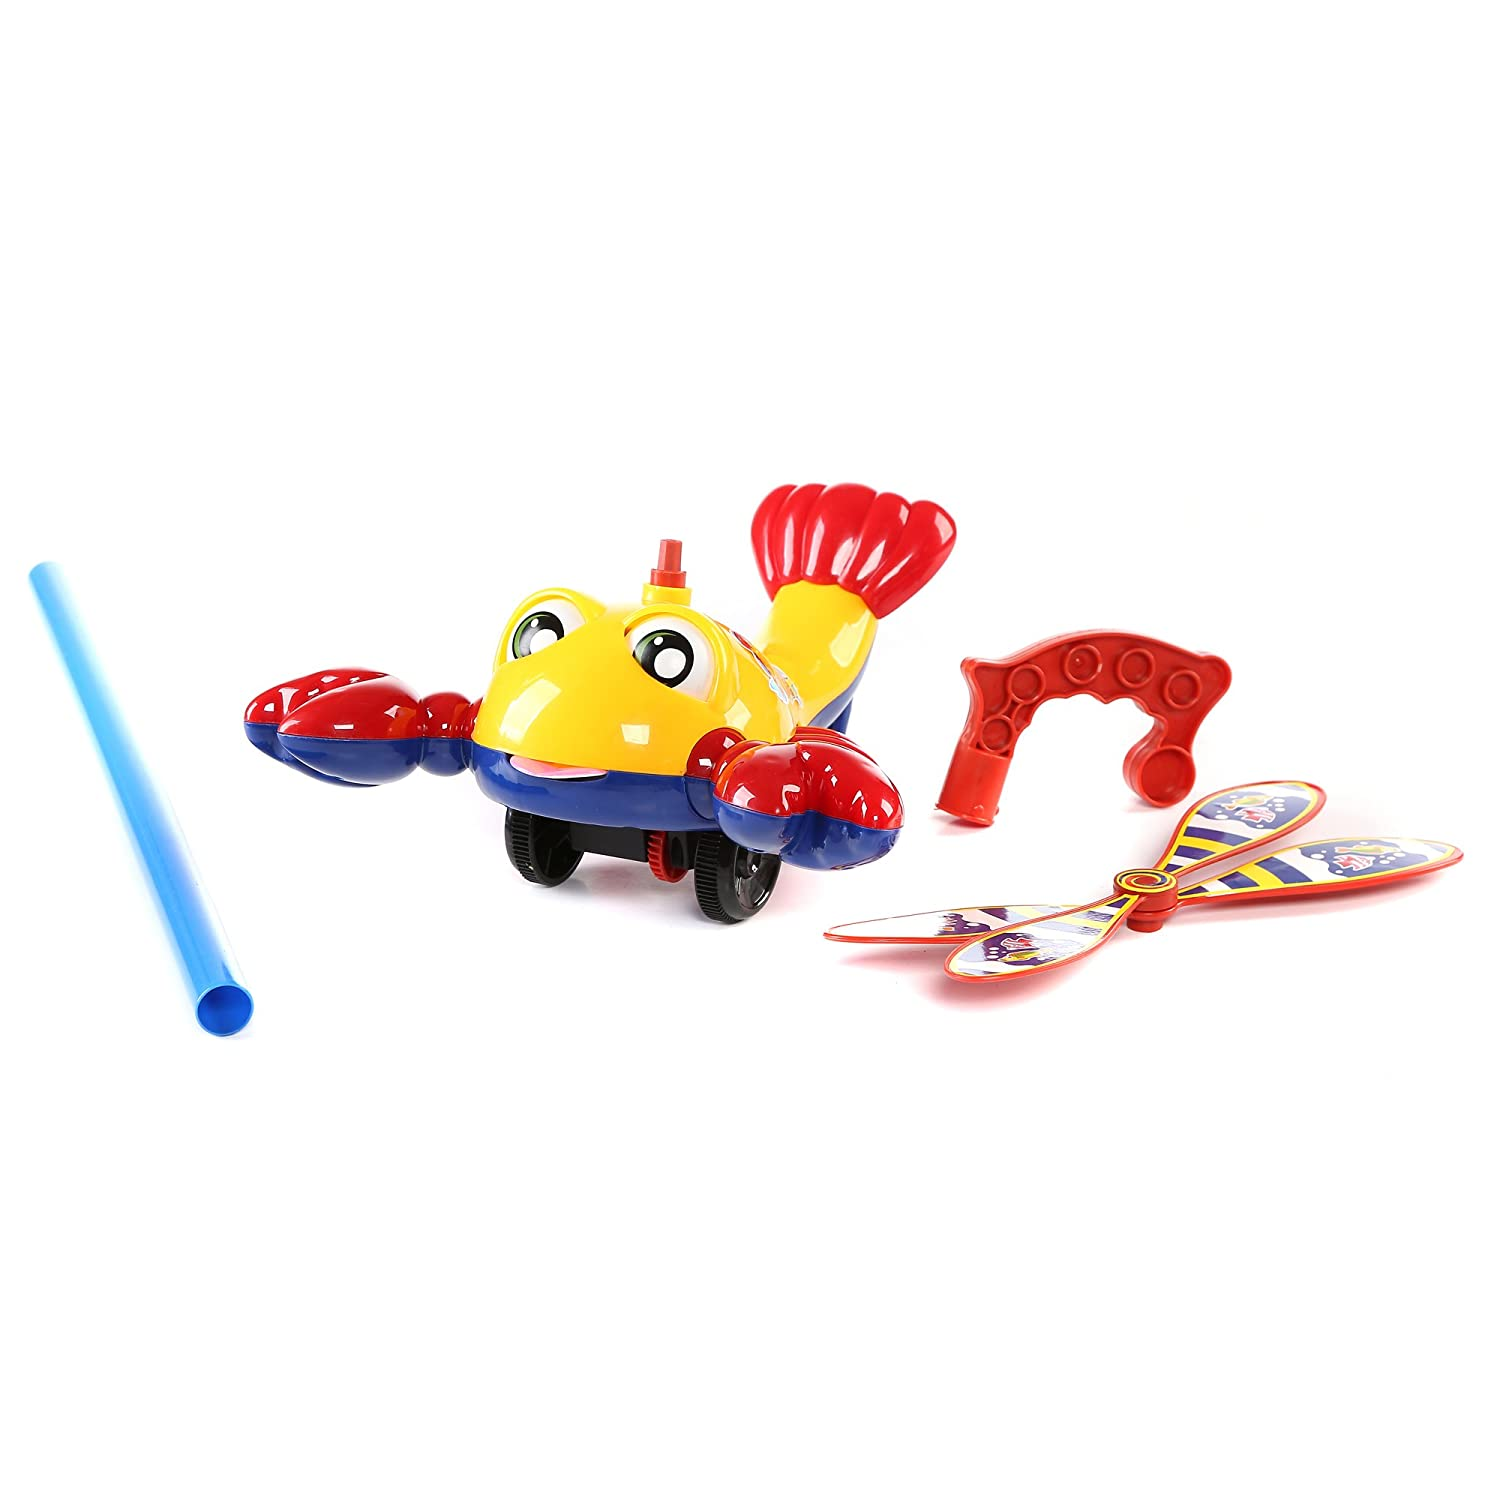 Pushing Toy for Kids Outdoor Push Toys and Party Prizes Push Around Toy for Baptism 1 Pc 10 inches Lobster Push Toy Classic Push and Pull Toys Birthday Fun Central BC903